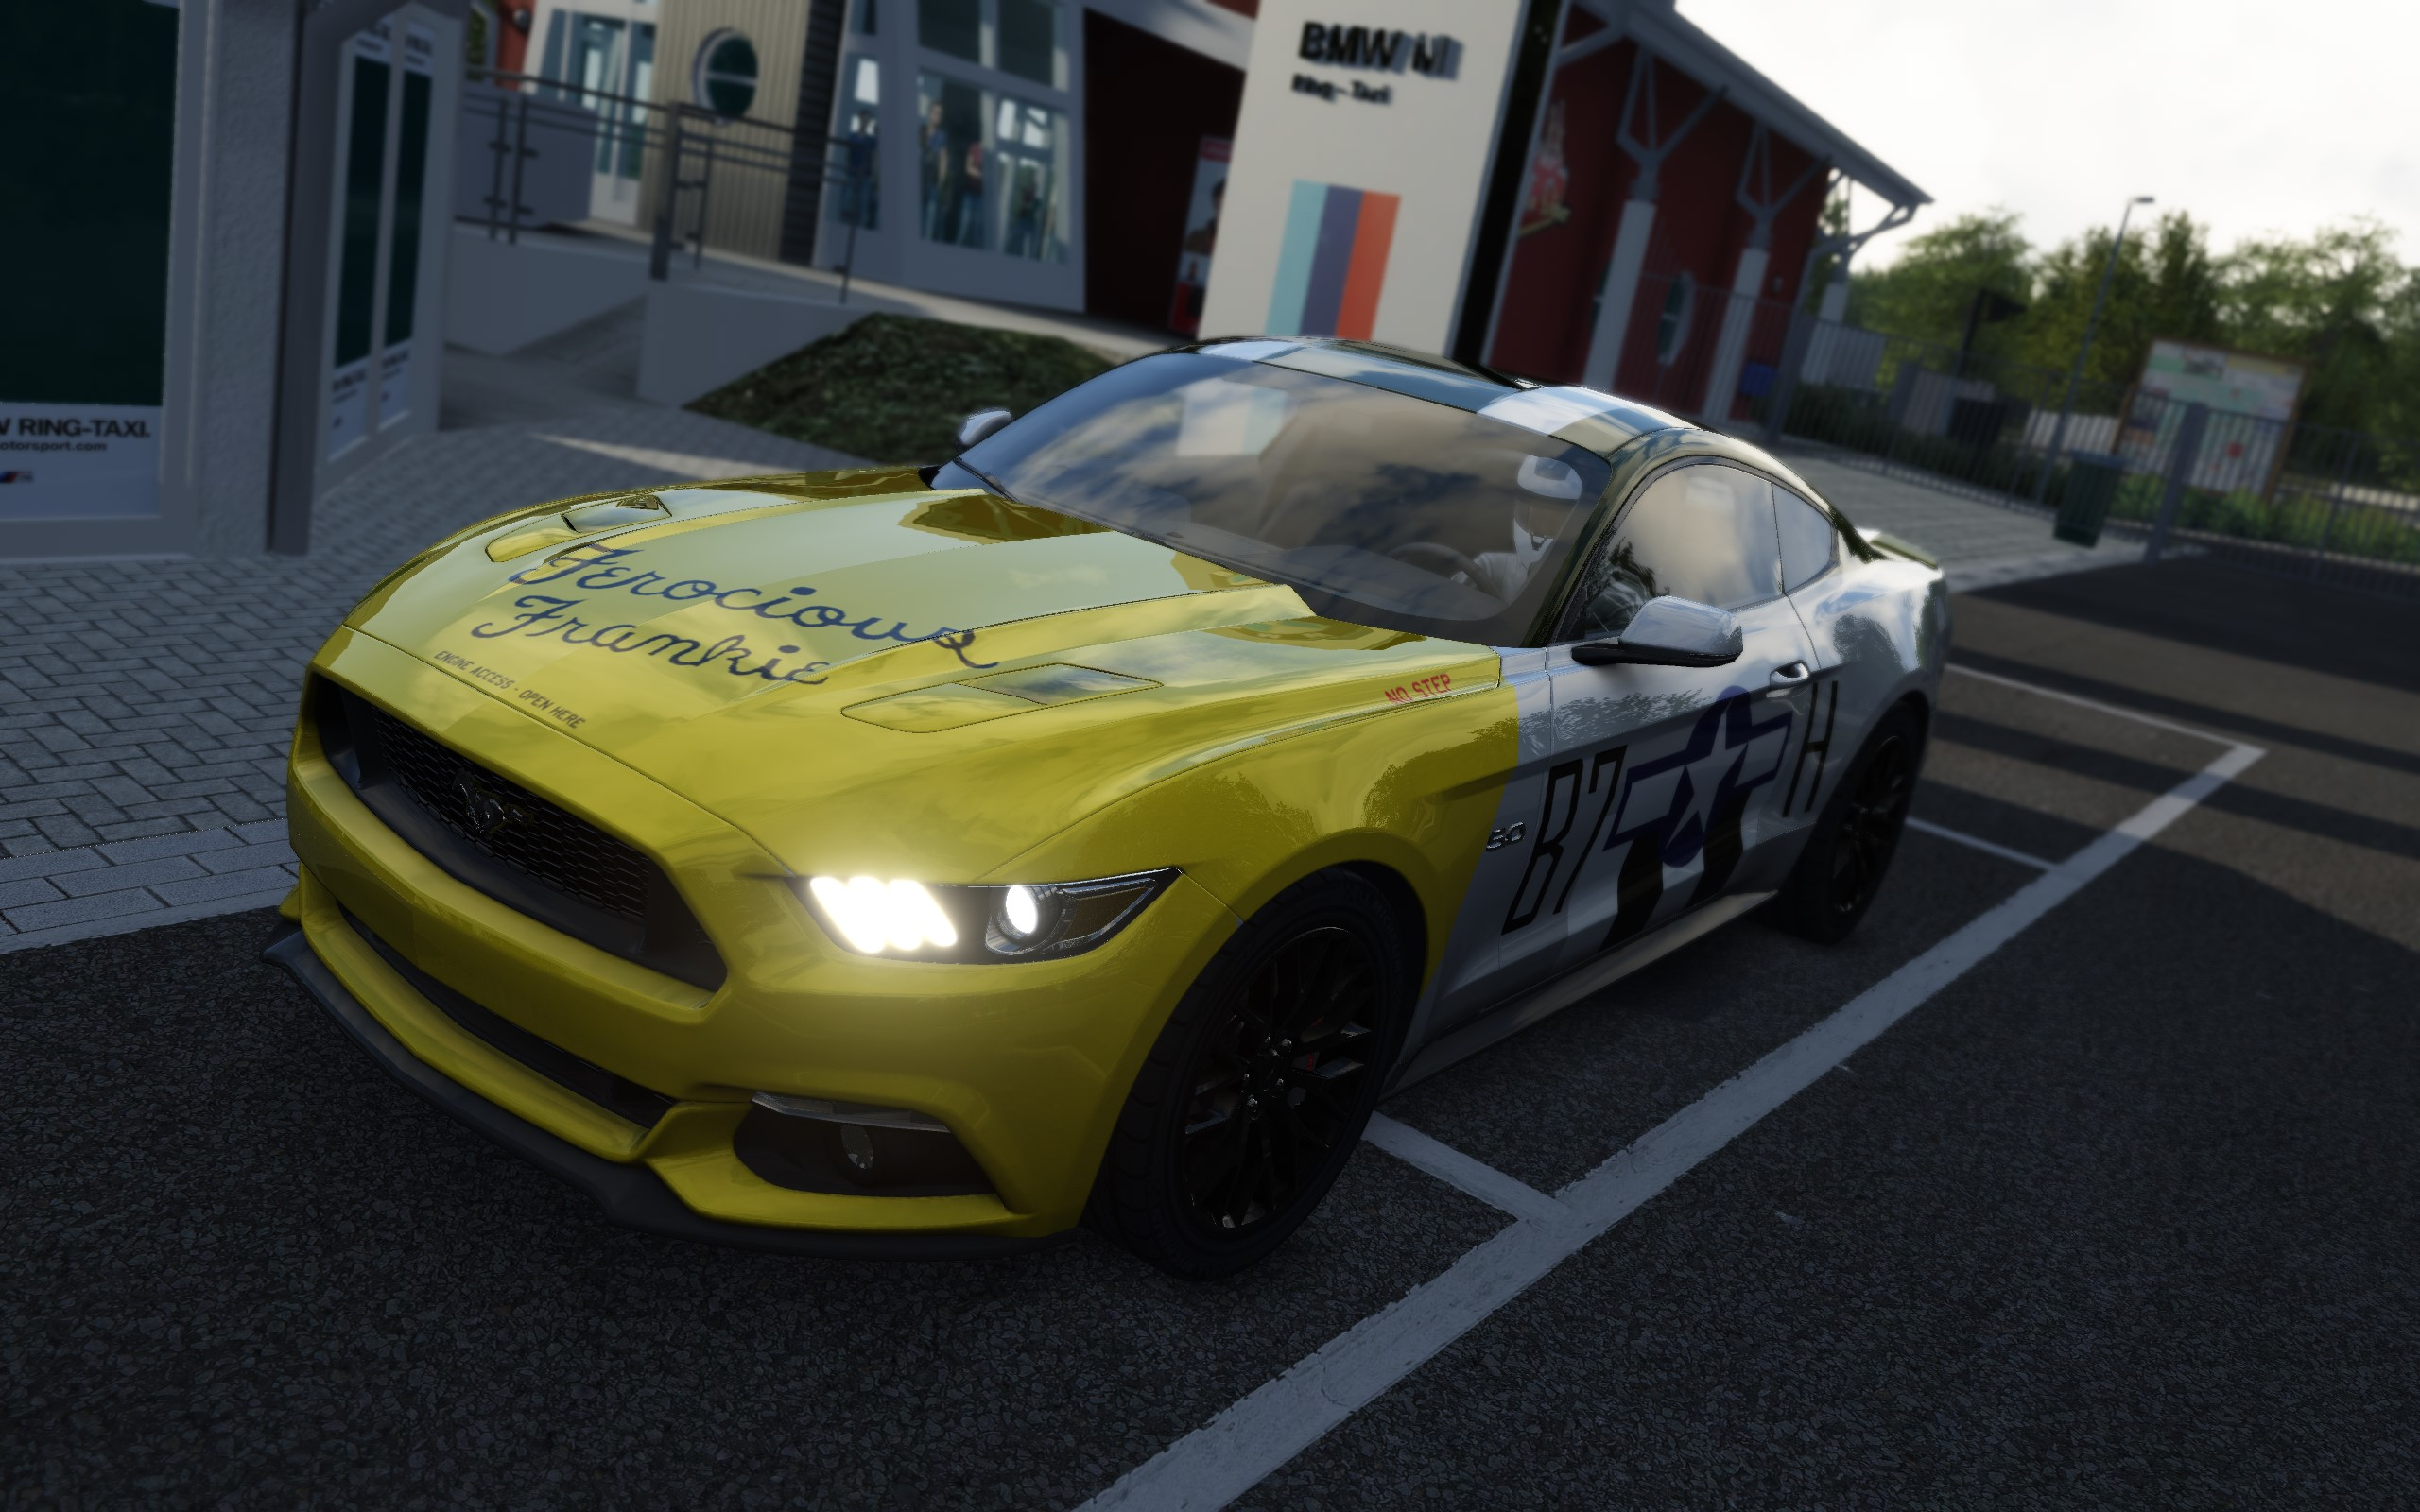 Screenshot_ks_ford_mustang_2015_ks_nordschleife_17-4-116-20-58-18.jpg